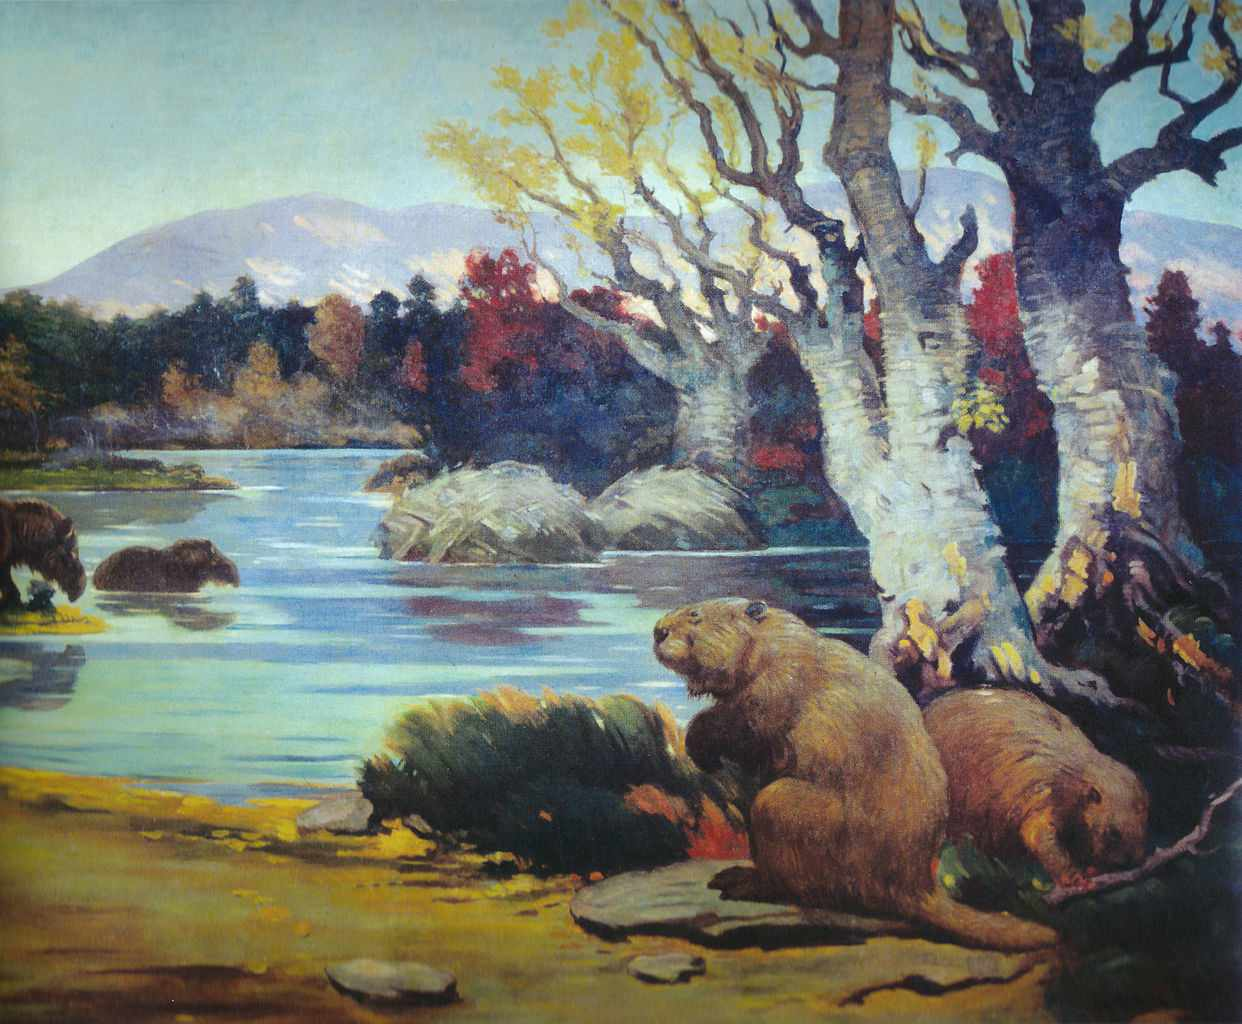 A painting with giant beavers along the water